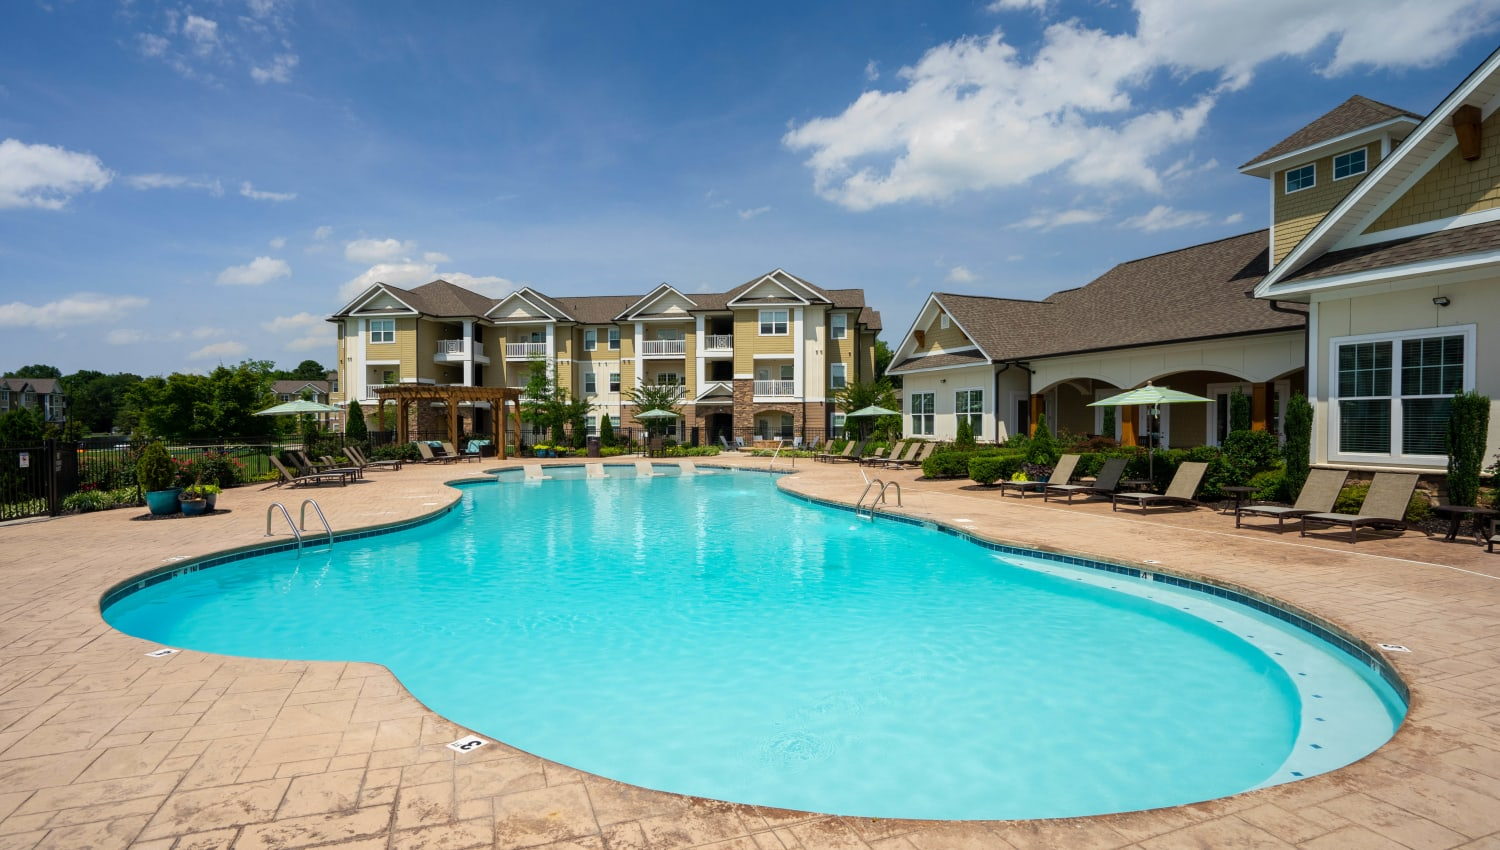 Sparkling swimming pool on a beautiful day at Legends at White Oak in Ooltewah, Tennessee